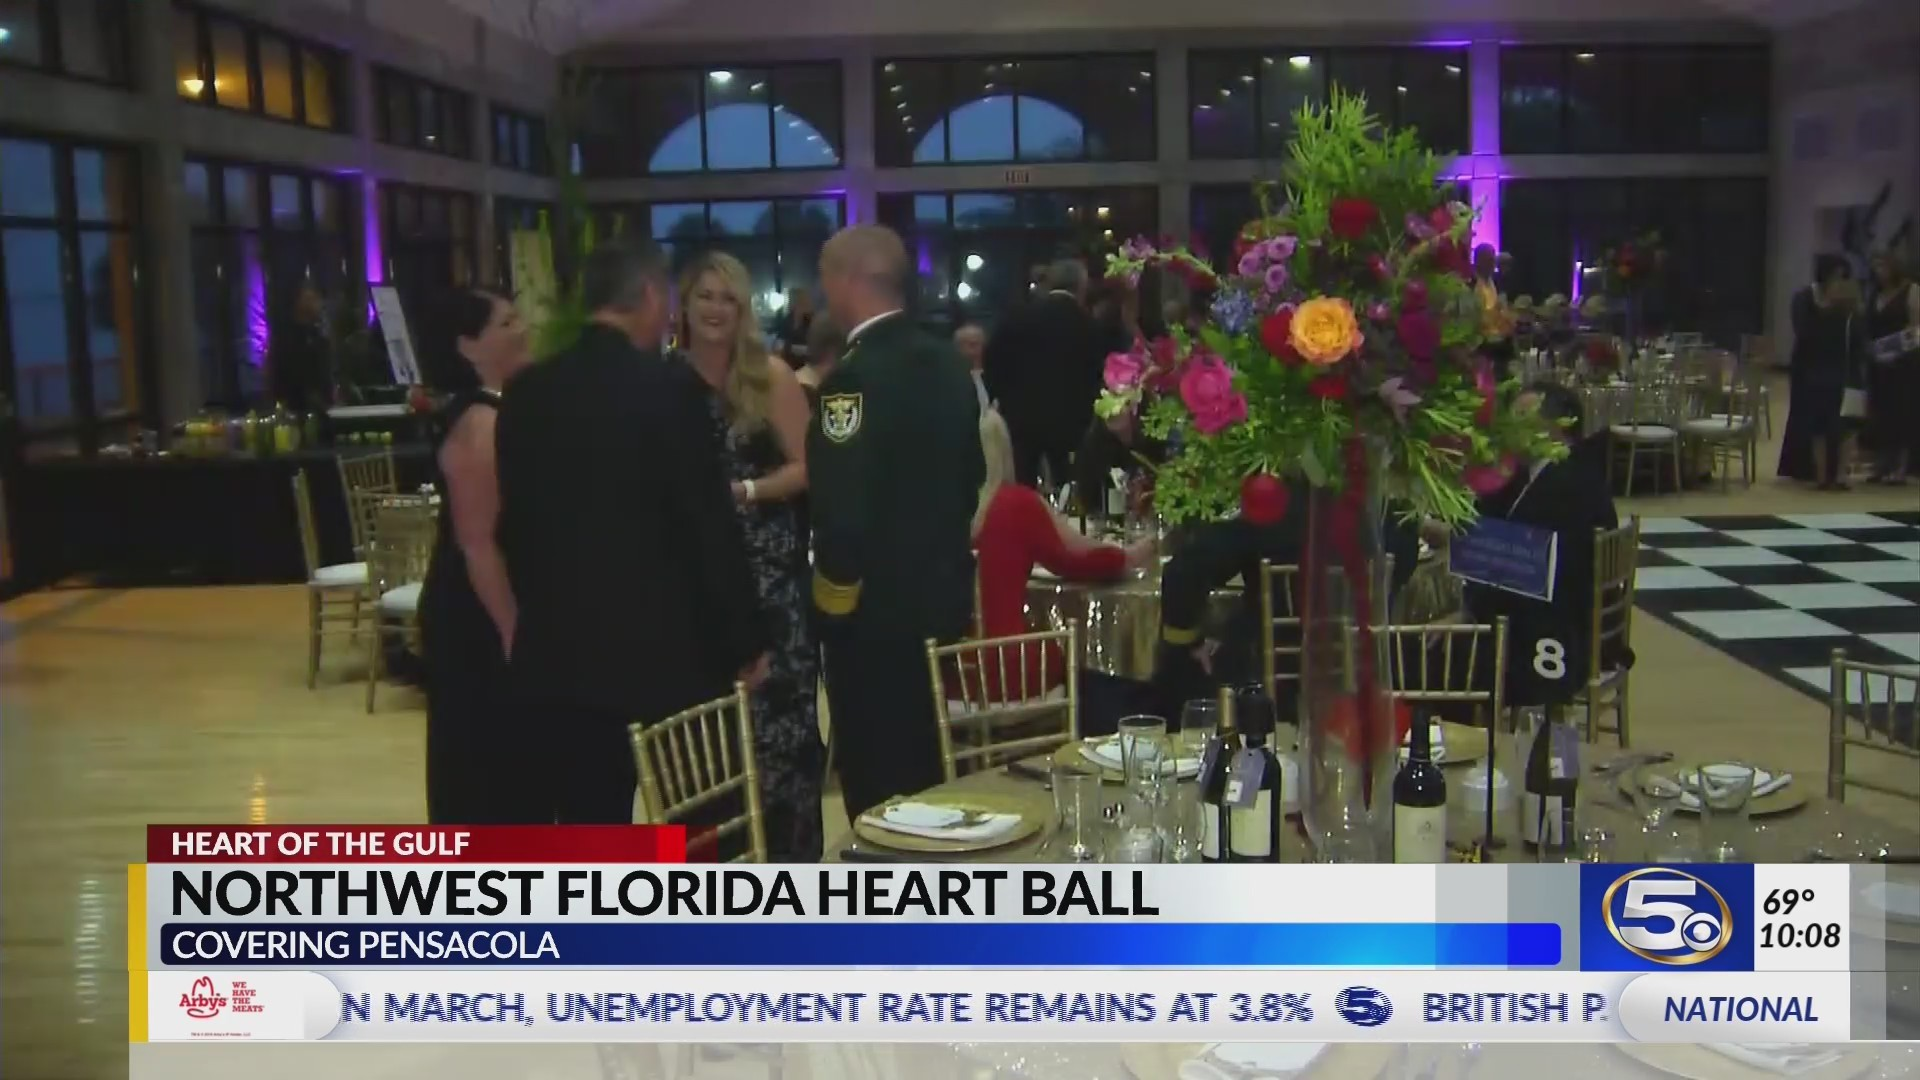 2019_Northwest_Florida_Heart_Ball_1_20190406031748